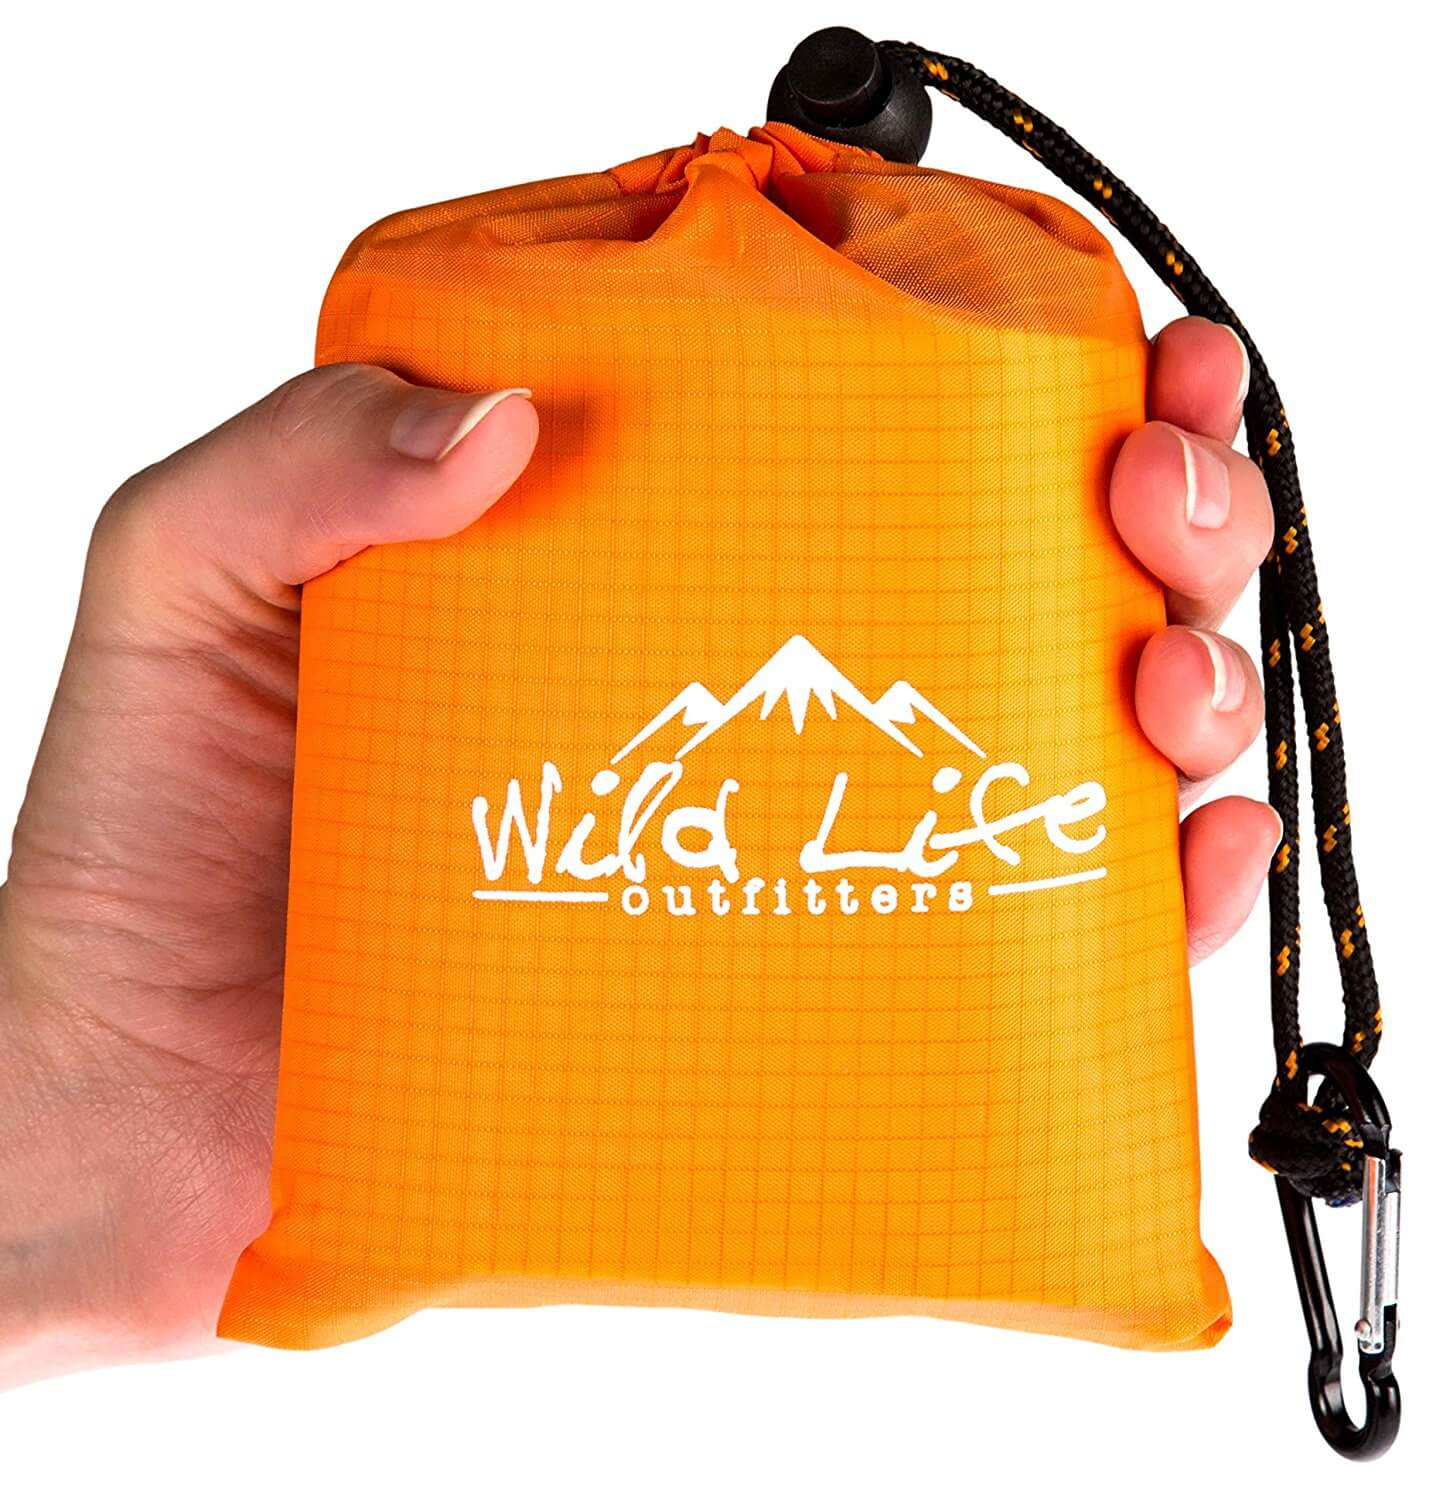 Wild Life Outfitters Kanga Pocket Blanket Review The